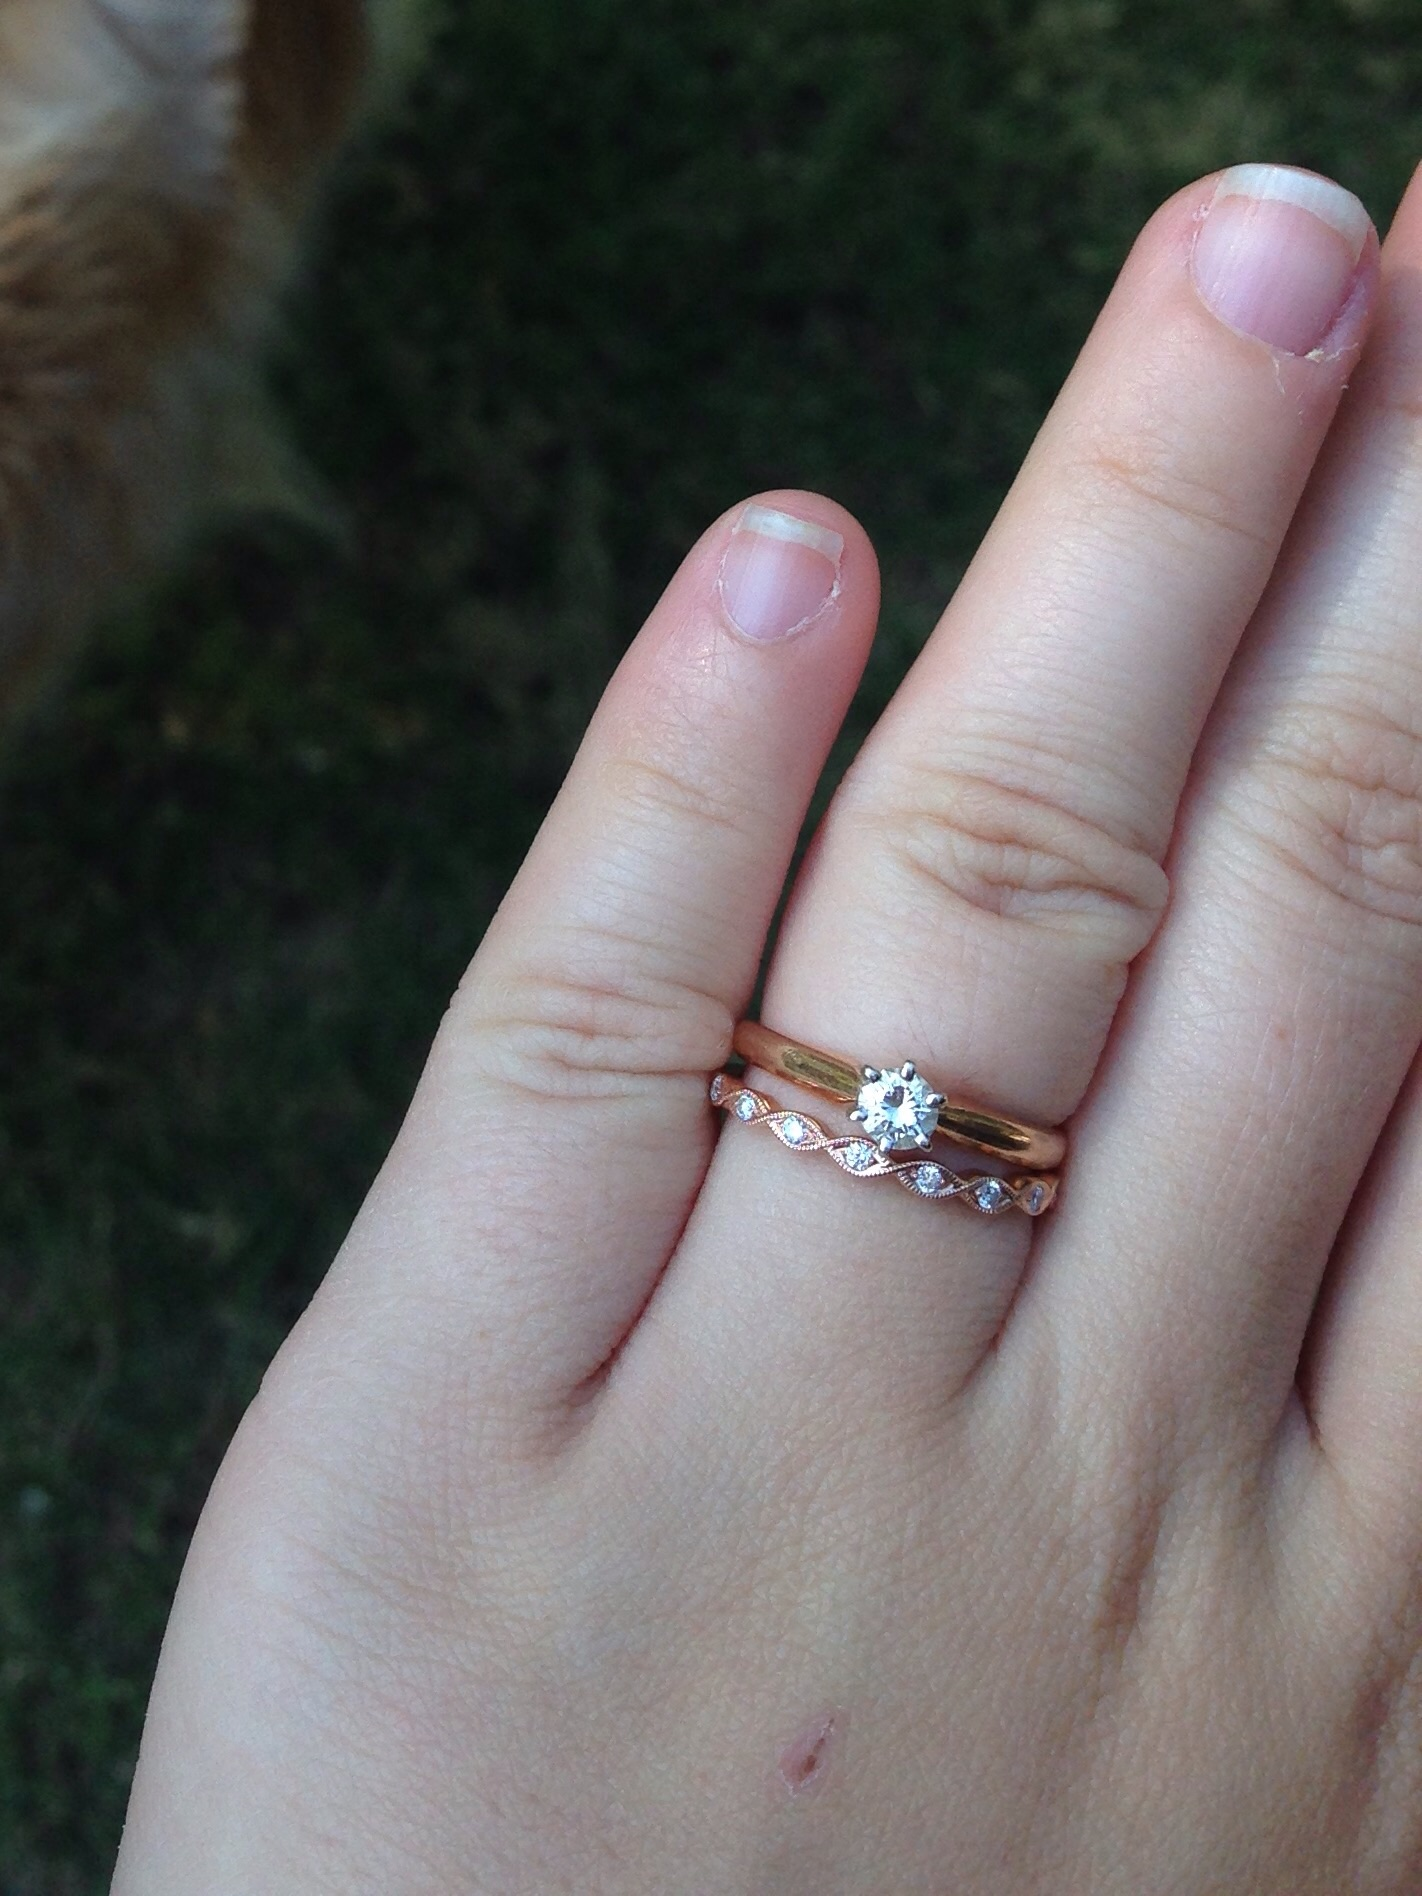 solitaire band what is too thin dainty wedding bands Post 6